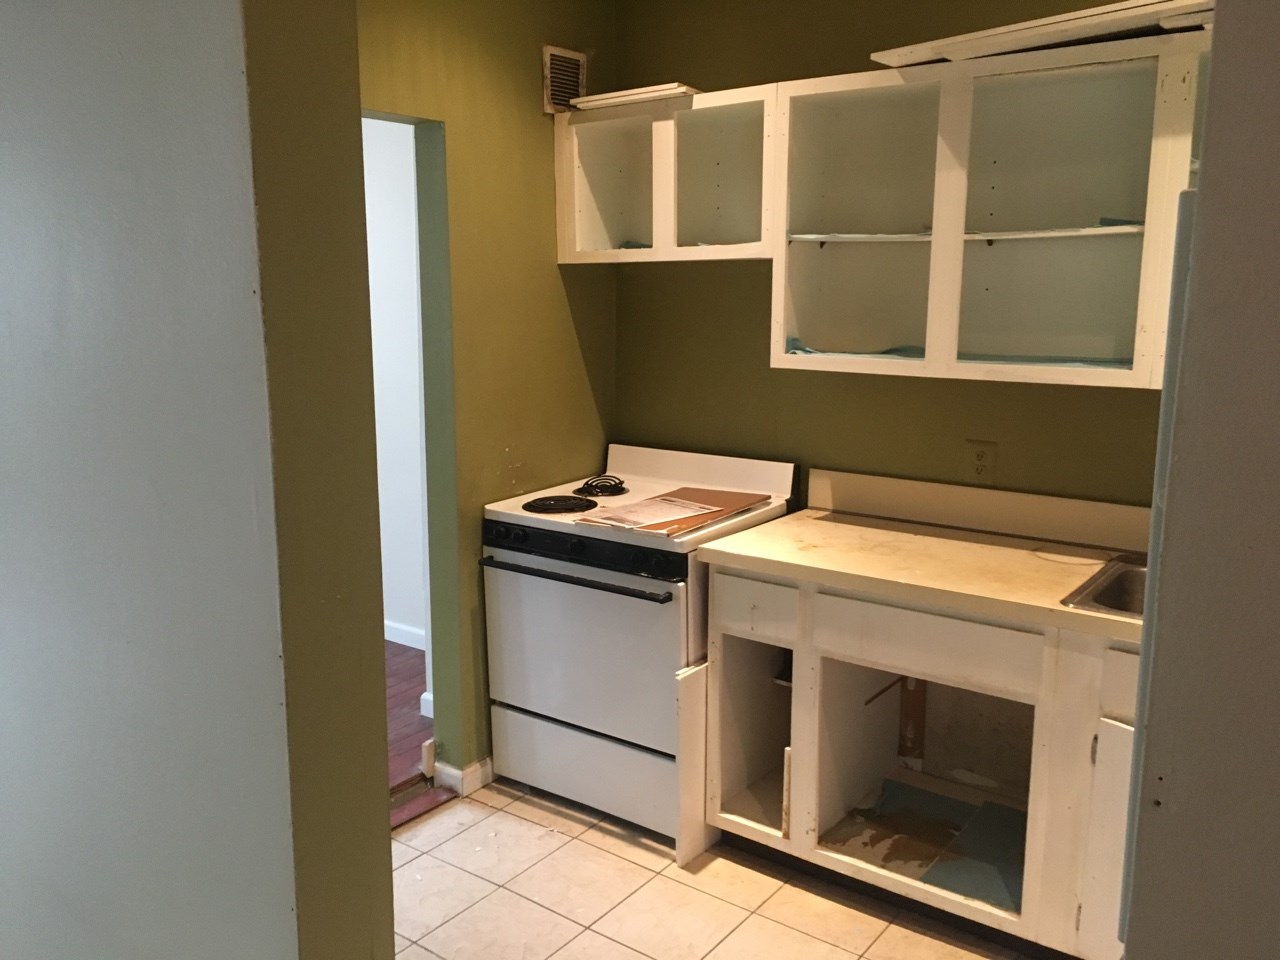 Apartment Remodel Jersey City NJ